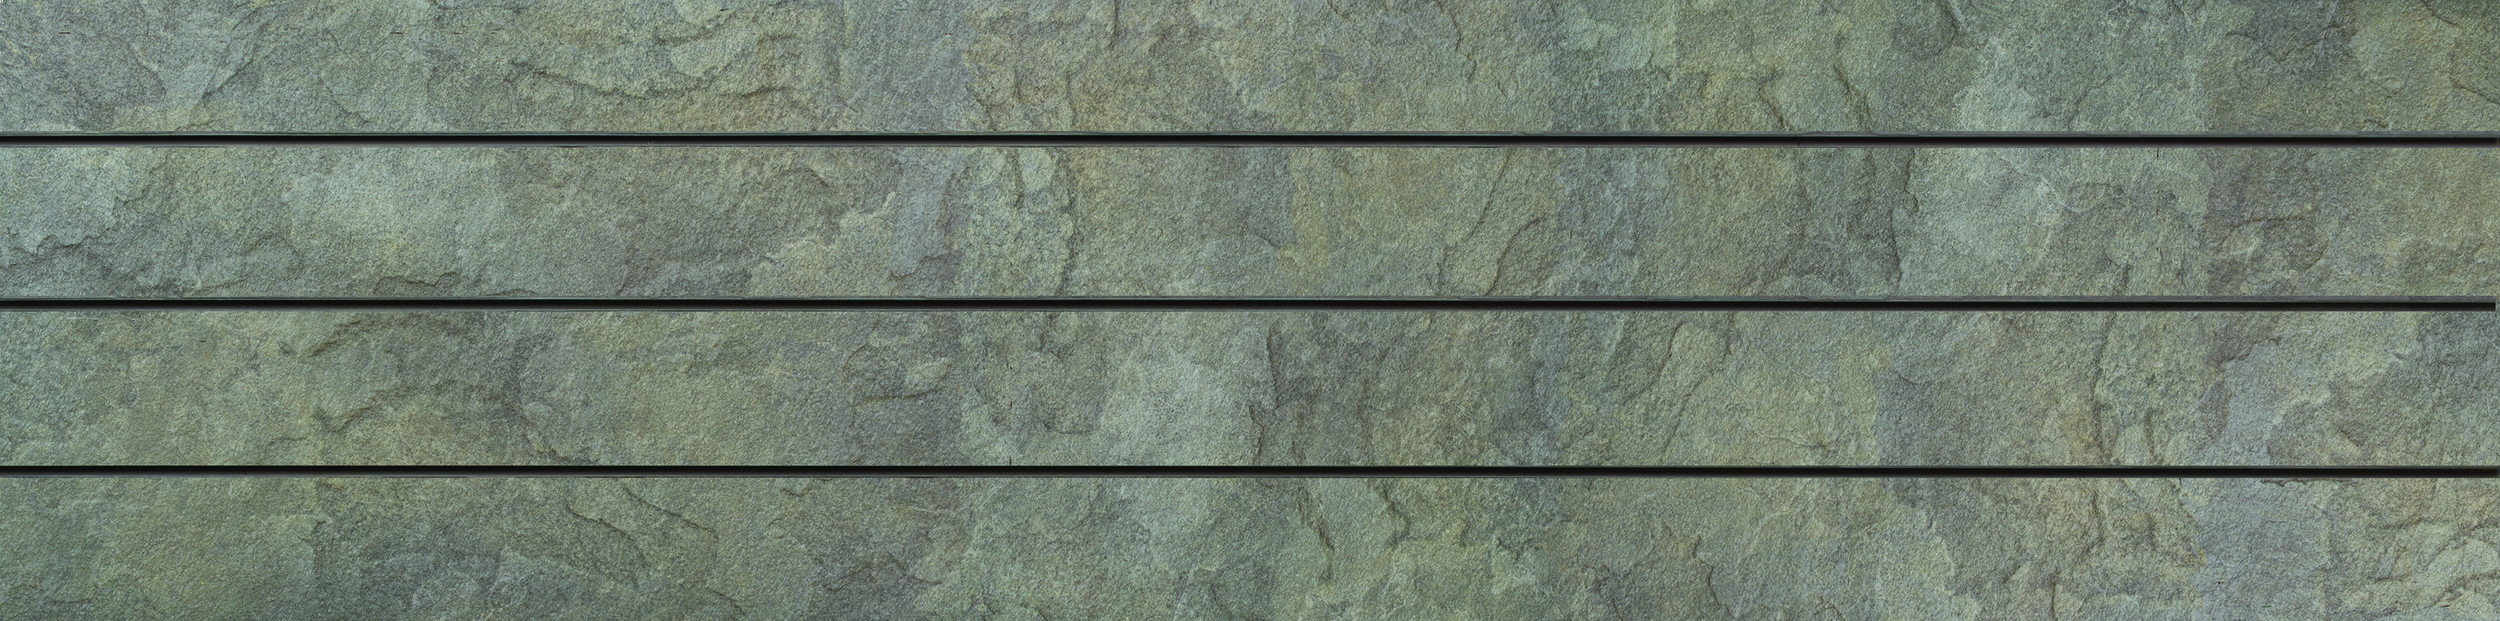 Slate warmtonefull panel.jpg